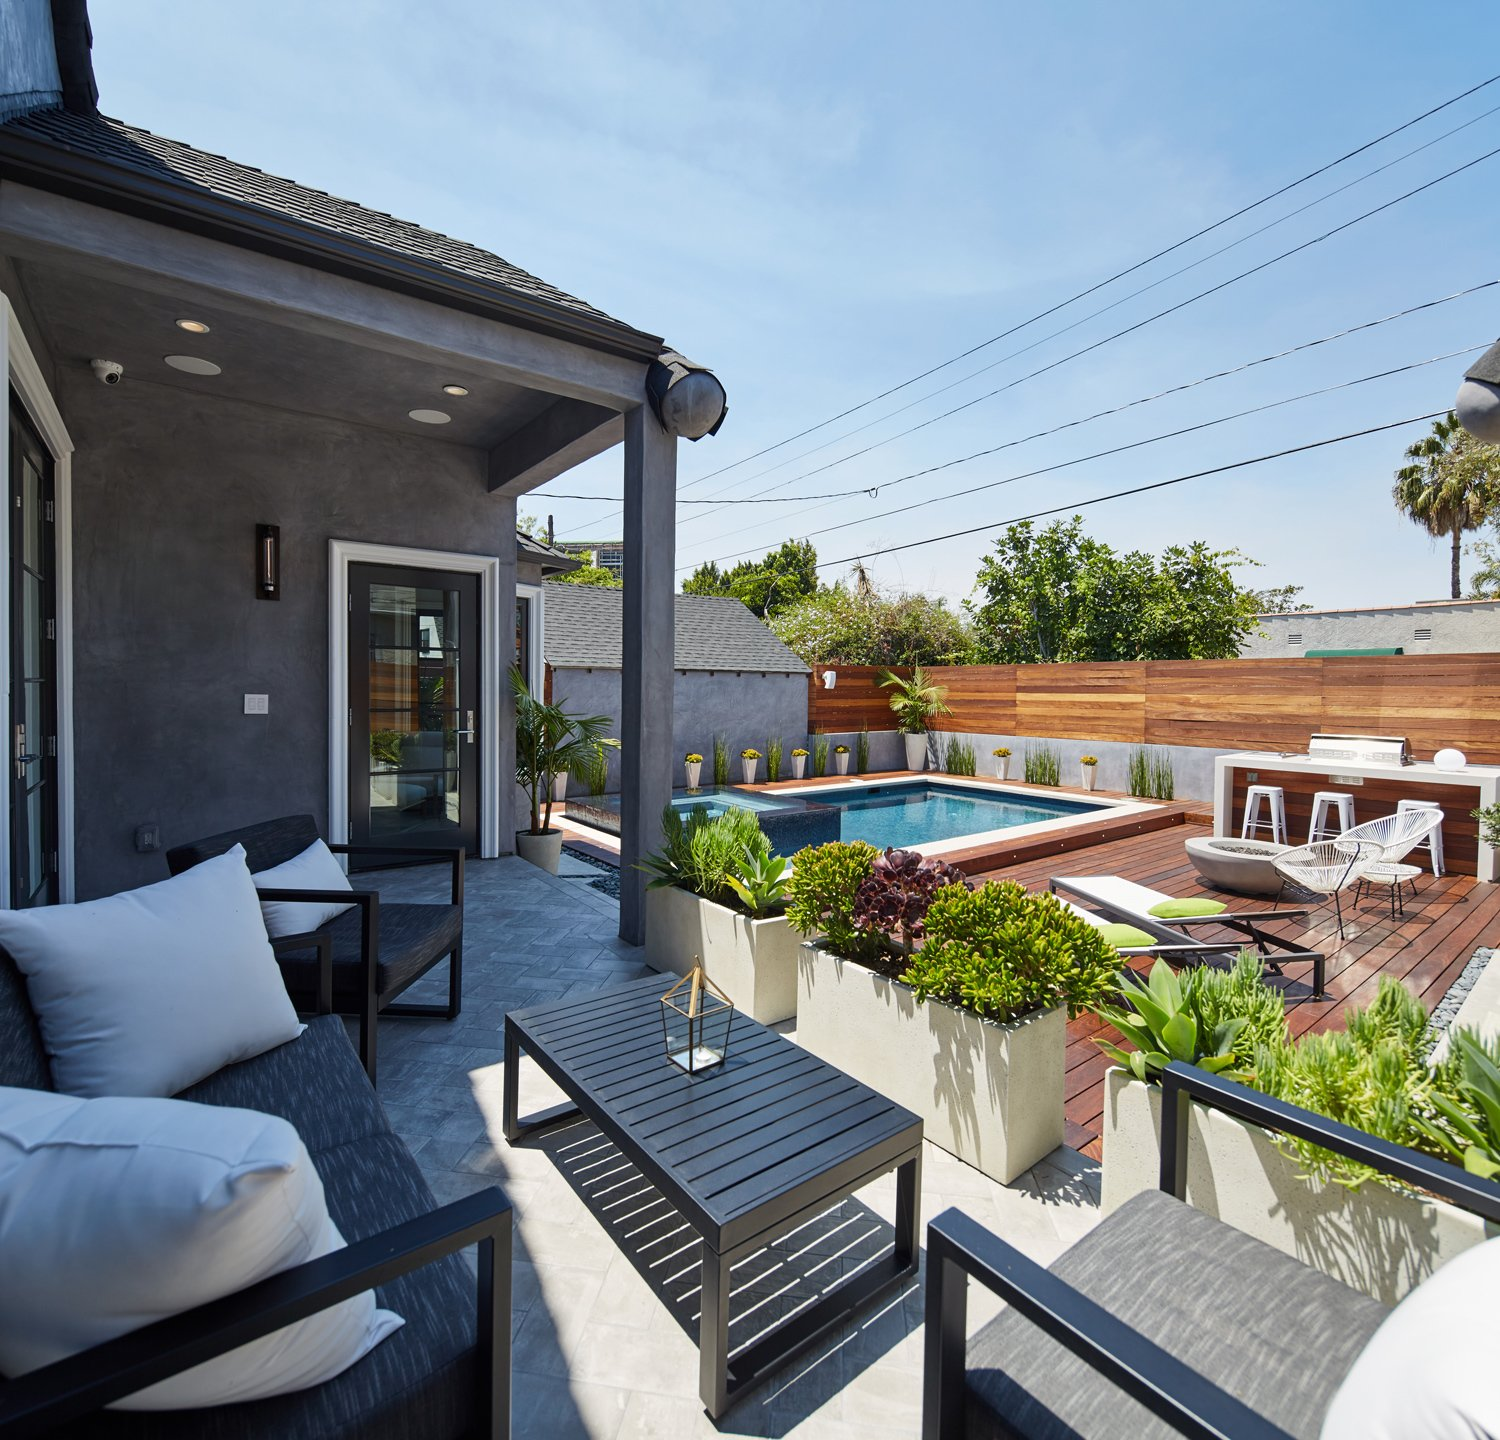 Back yard Tagged: Outdoor, Walkways, Raised Planters, Salt Water, Hardscapes, Swimming, Small, Wood, Large, Wood, Horizontal, Decking, and Landscape.  Best Outdoor Decking Landscape Photos from West Hollywood Tudor